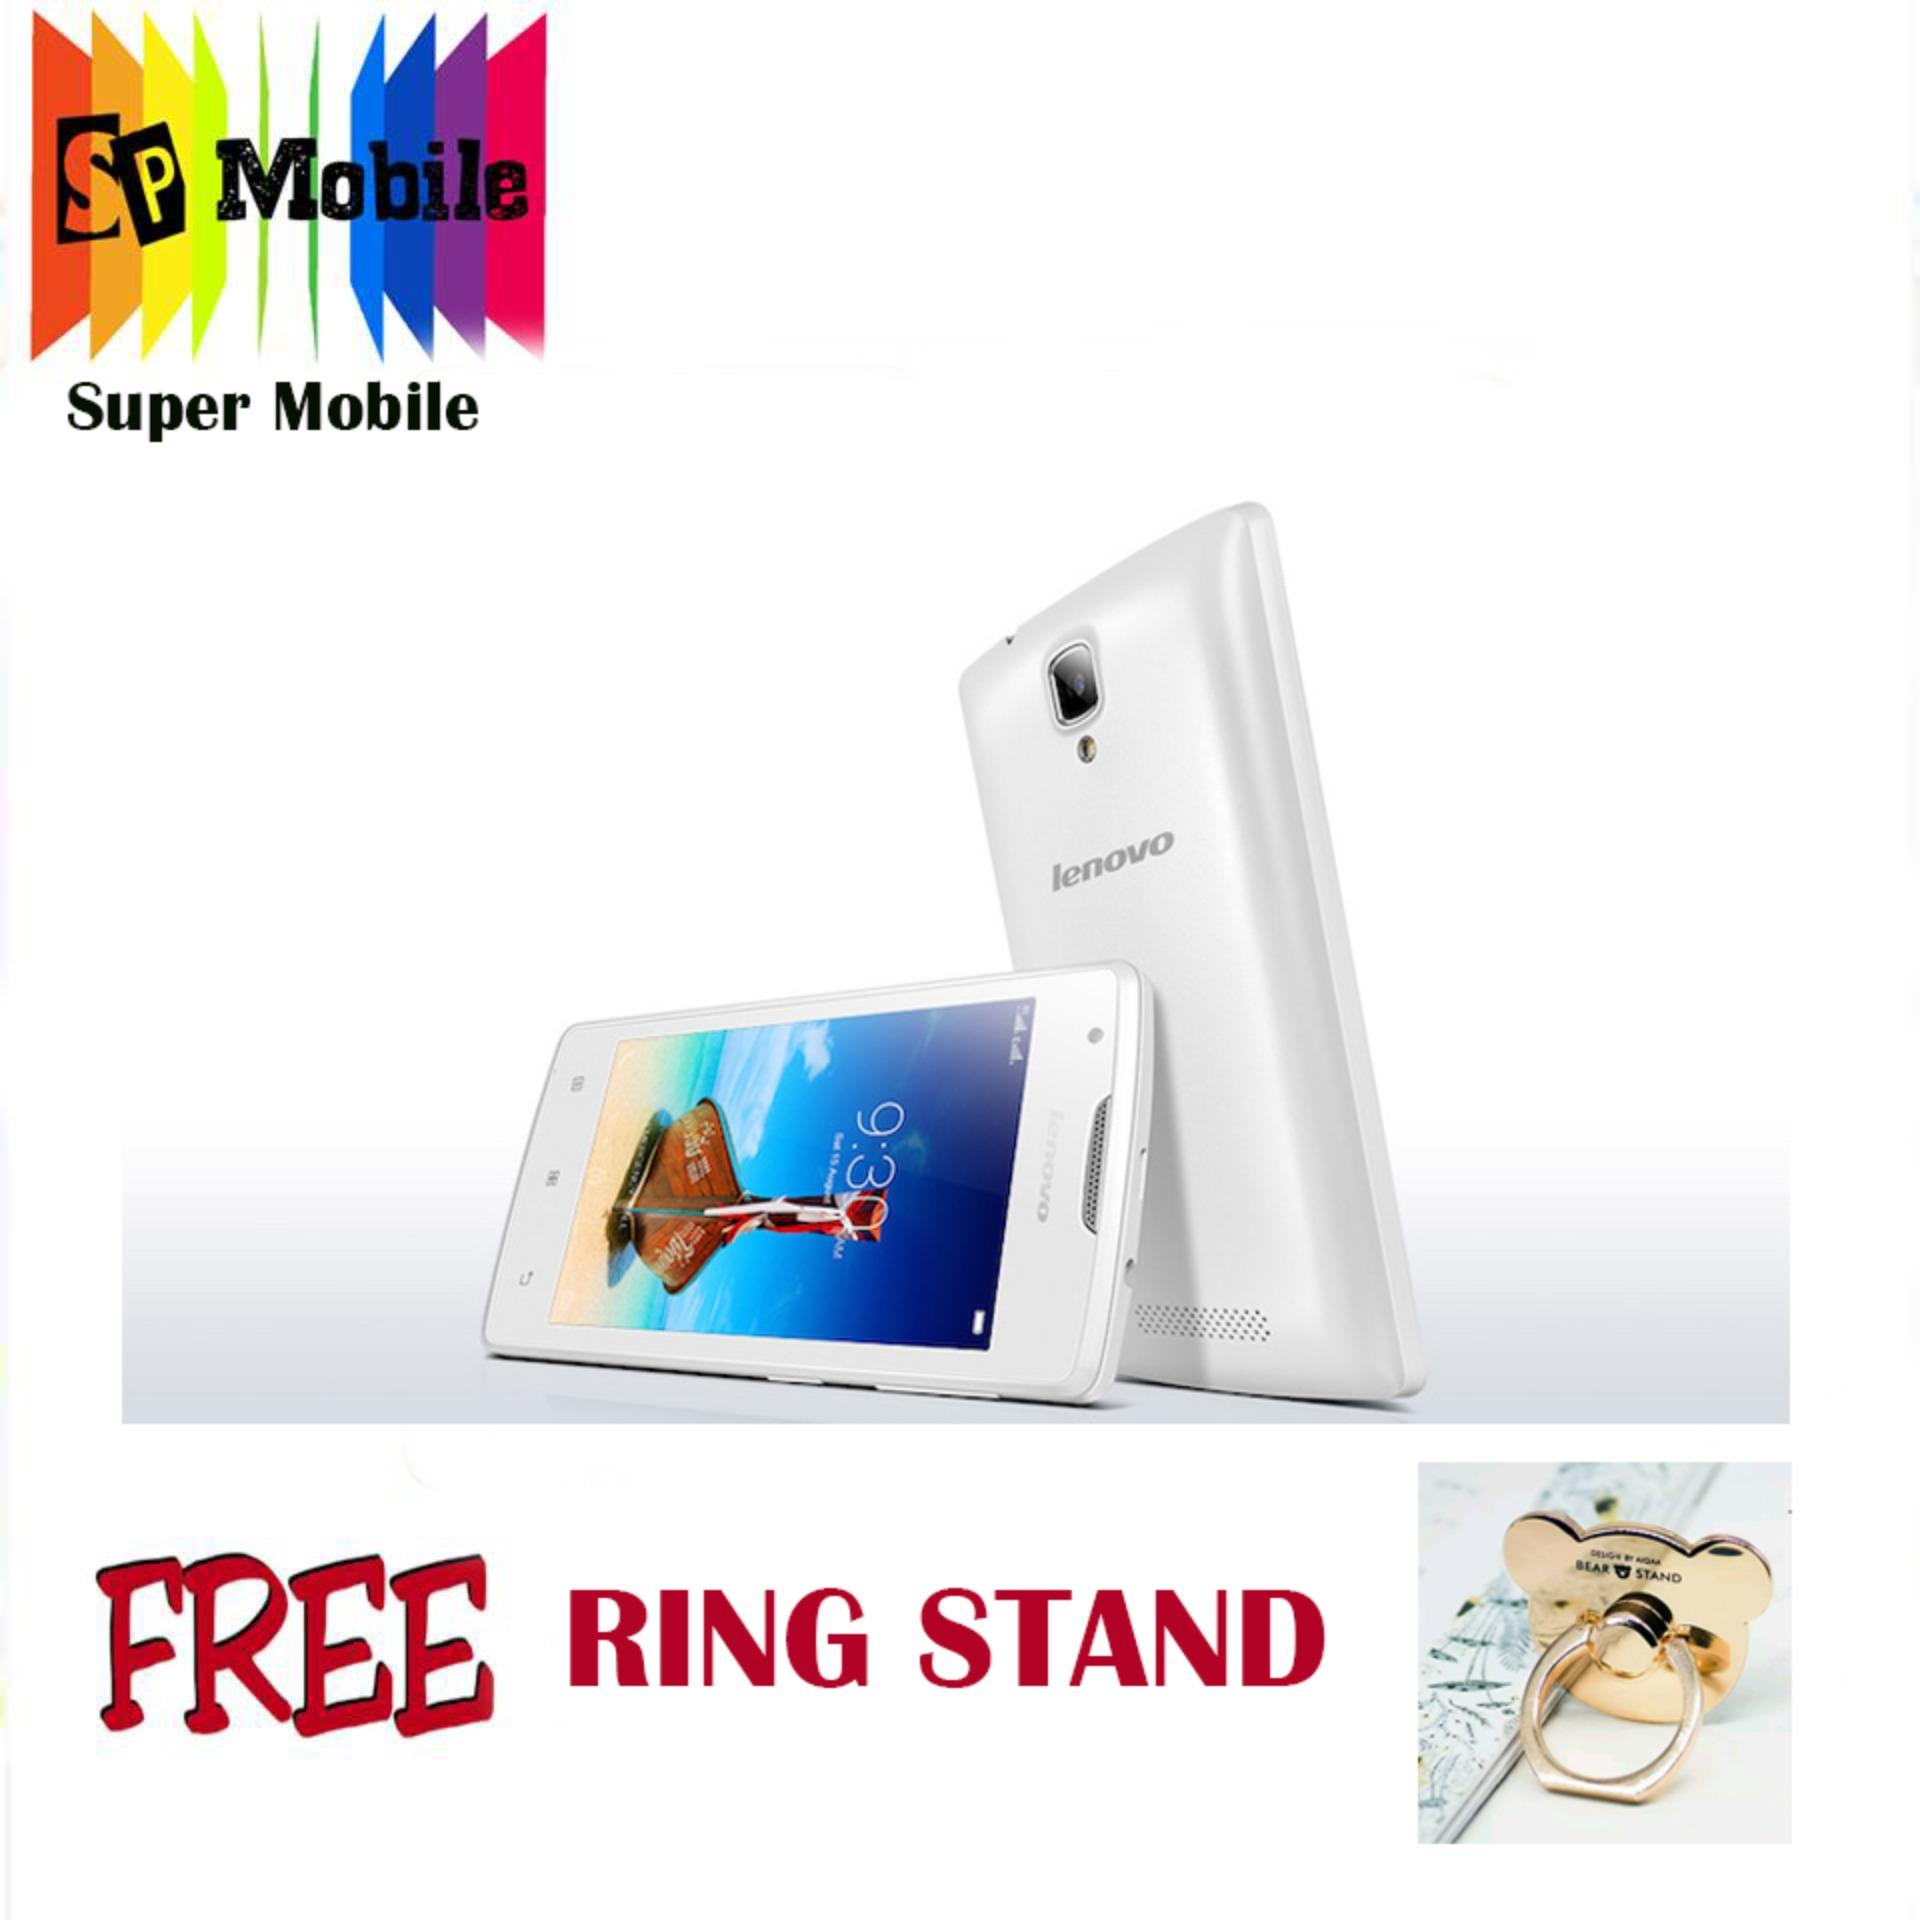 Lenovo A1000 8GB (BLACK&WHITE) FREE RING STAND